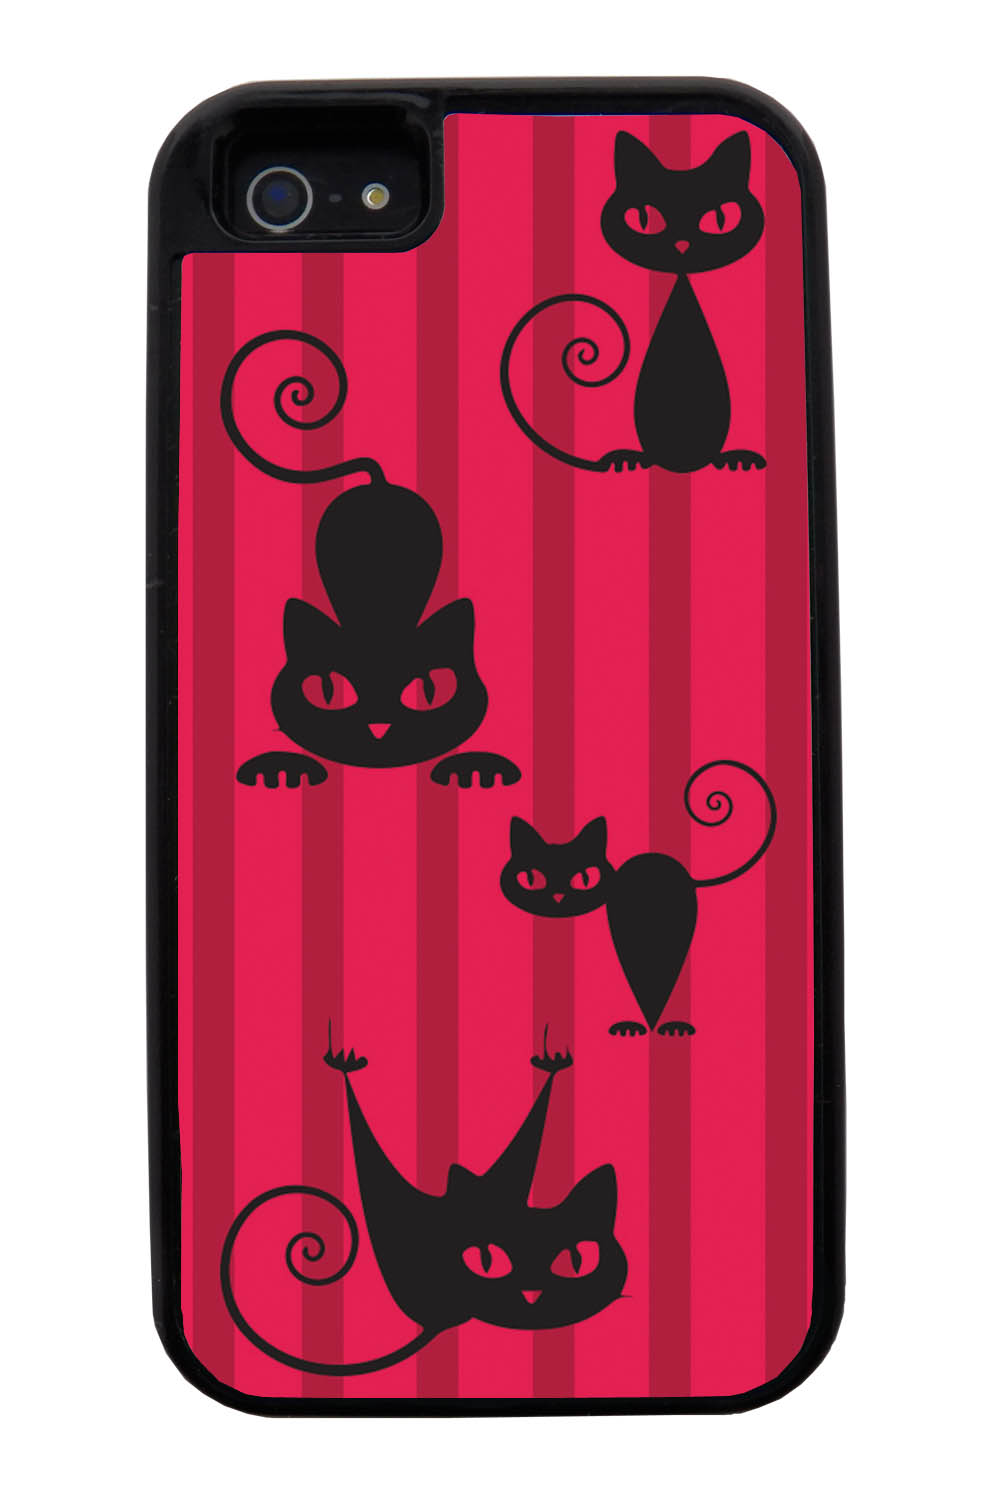 Apple iPhone 5 / 5S Cat Case - Black Cat on Red Stripes - Simple Stencils Cutout - Black Tough Hybrid Case